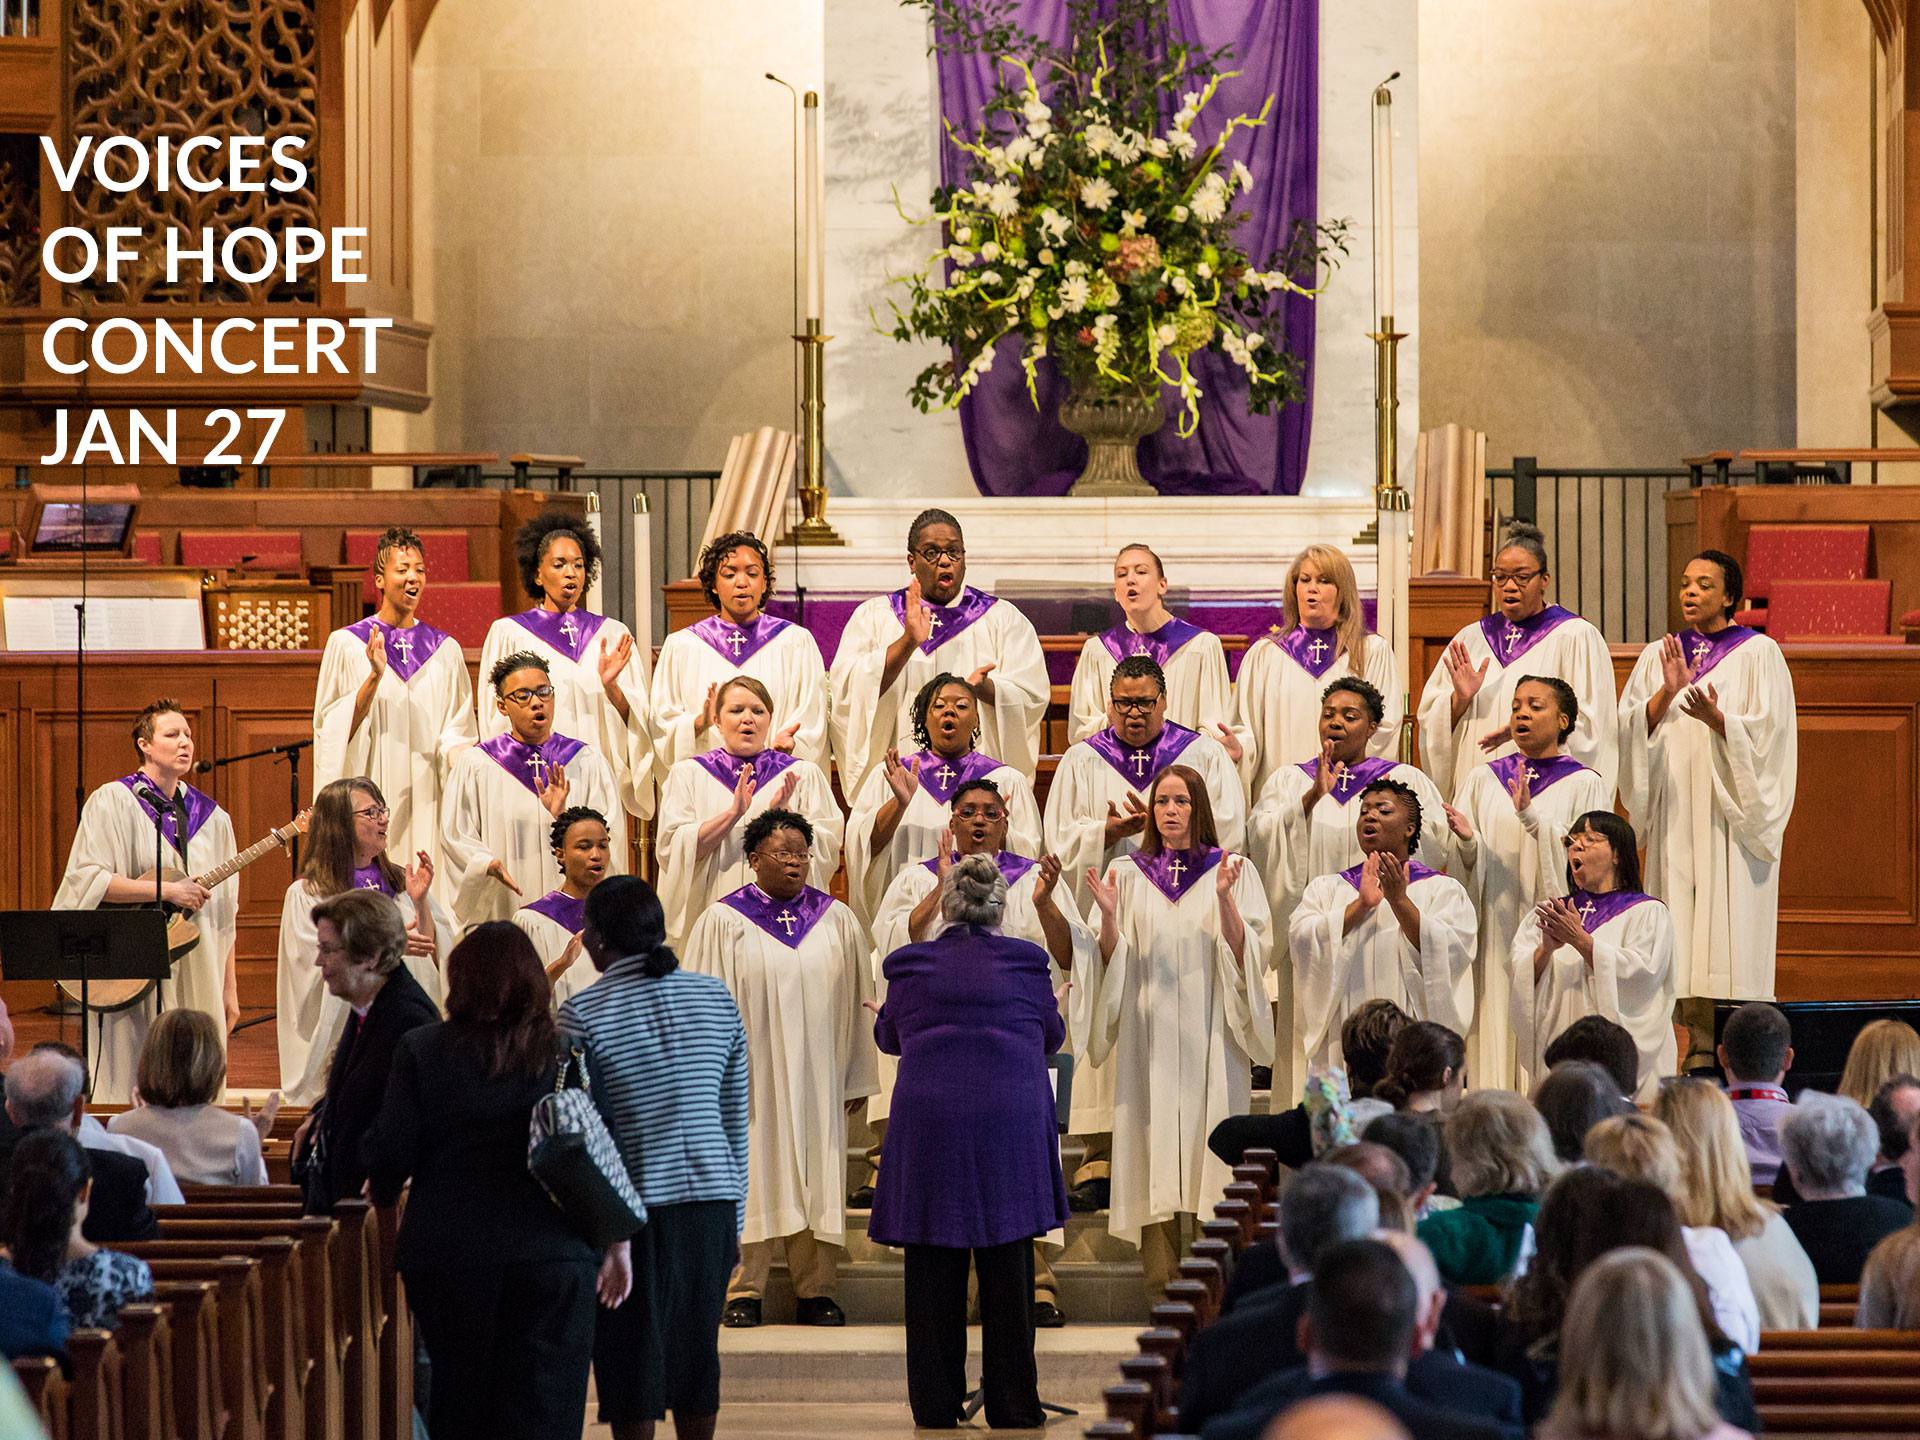 Voices of Hope Concert